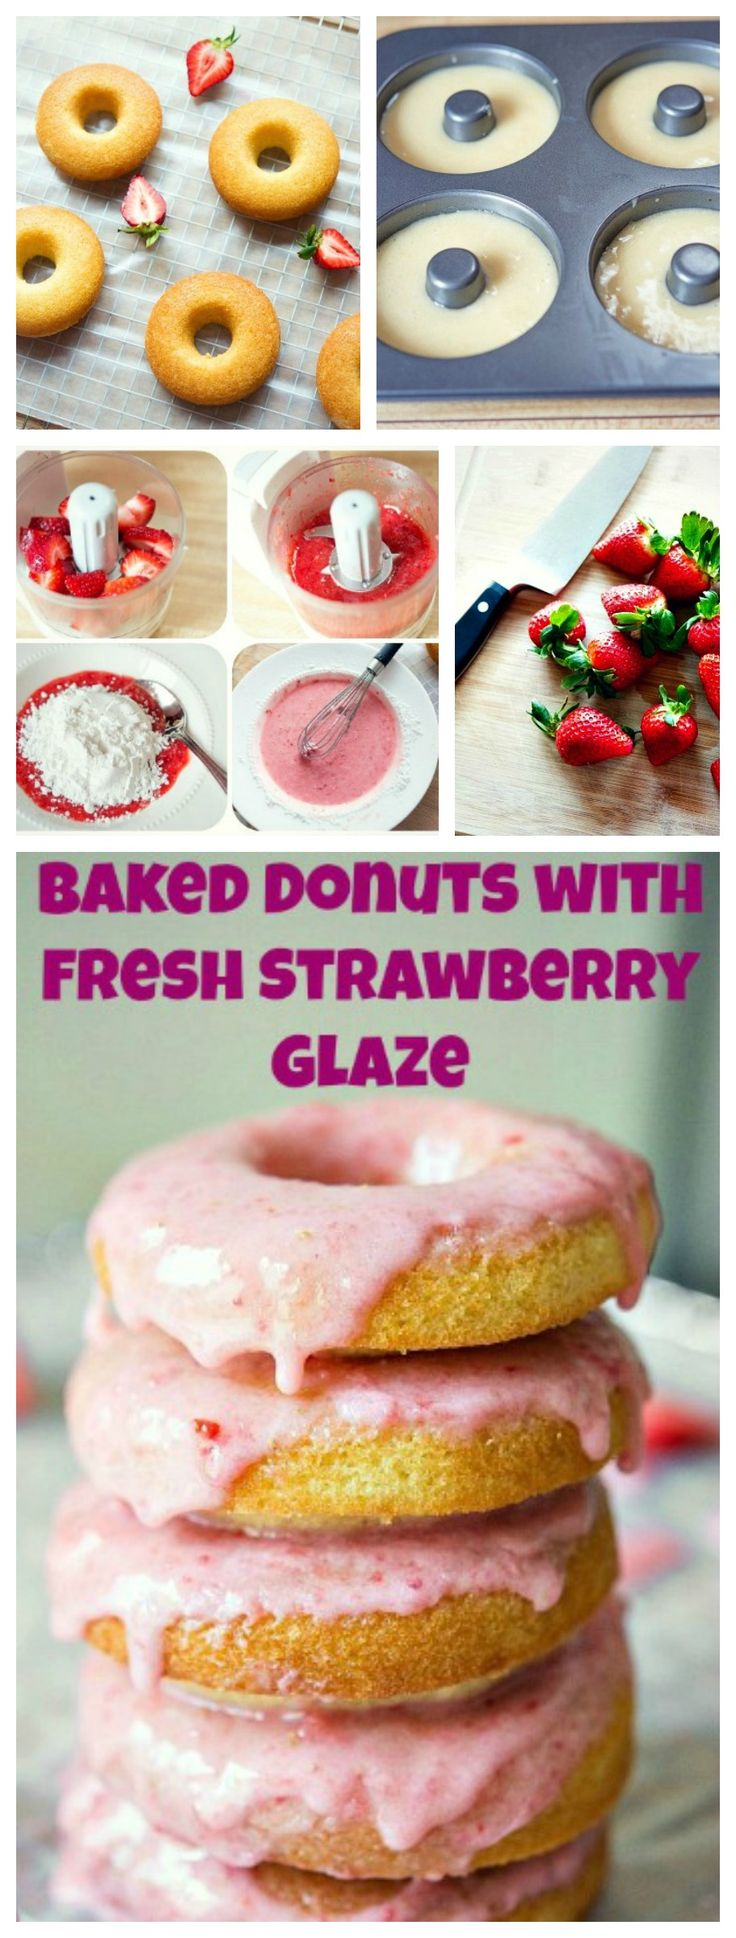 These #Baked #Doughnuts with Fresh #Strawberry Glaze are SO good! They are the best baked doughnuts and are just a little #healthier than fried doughnuts. So what are you waiting for??